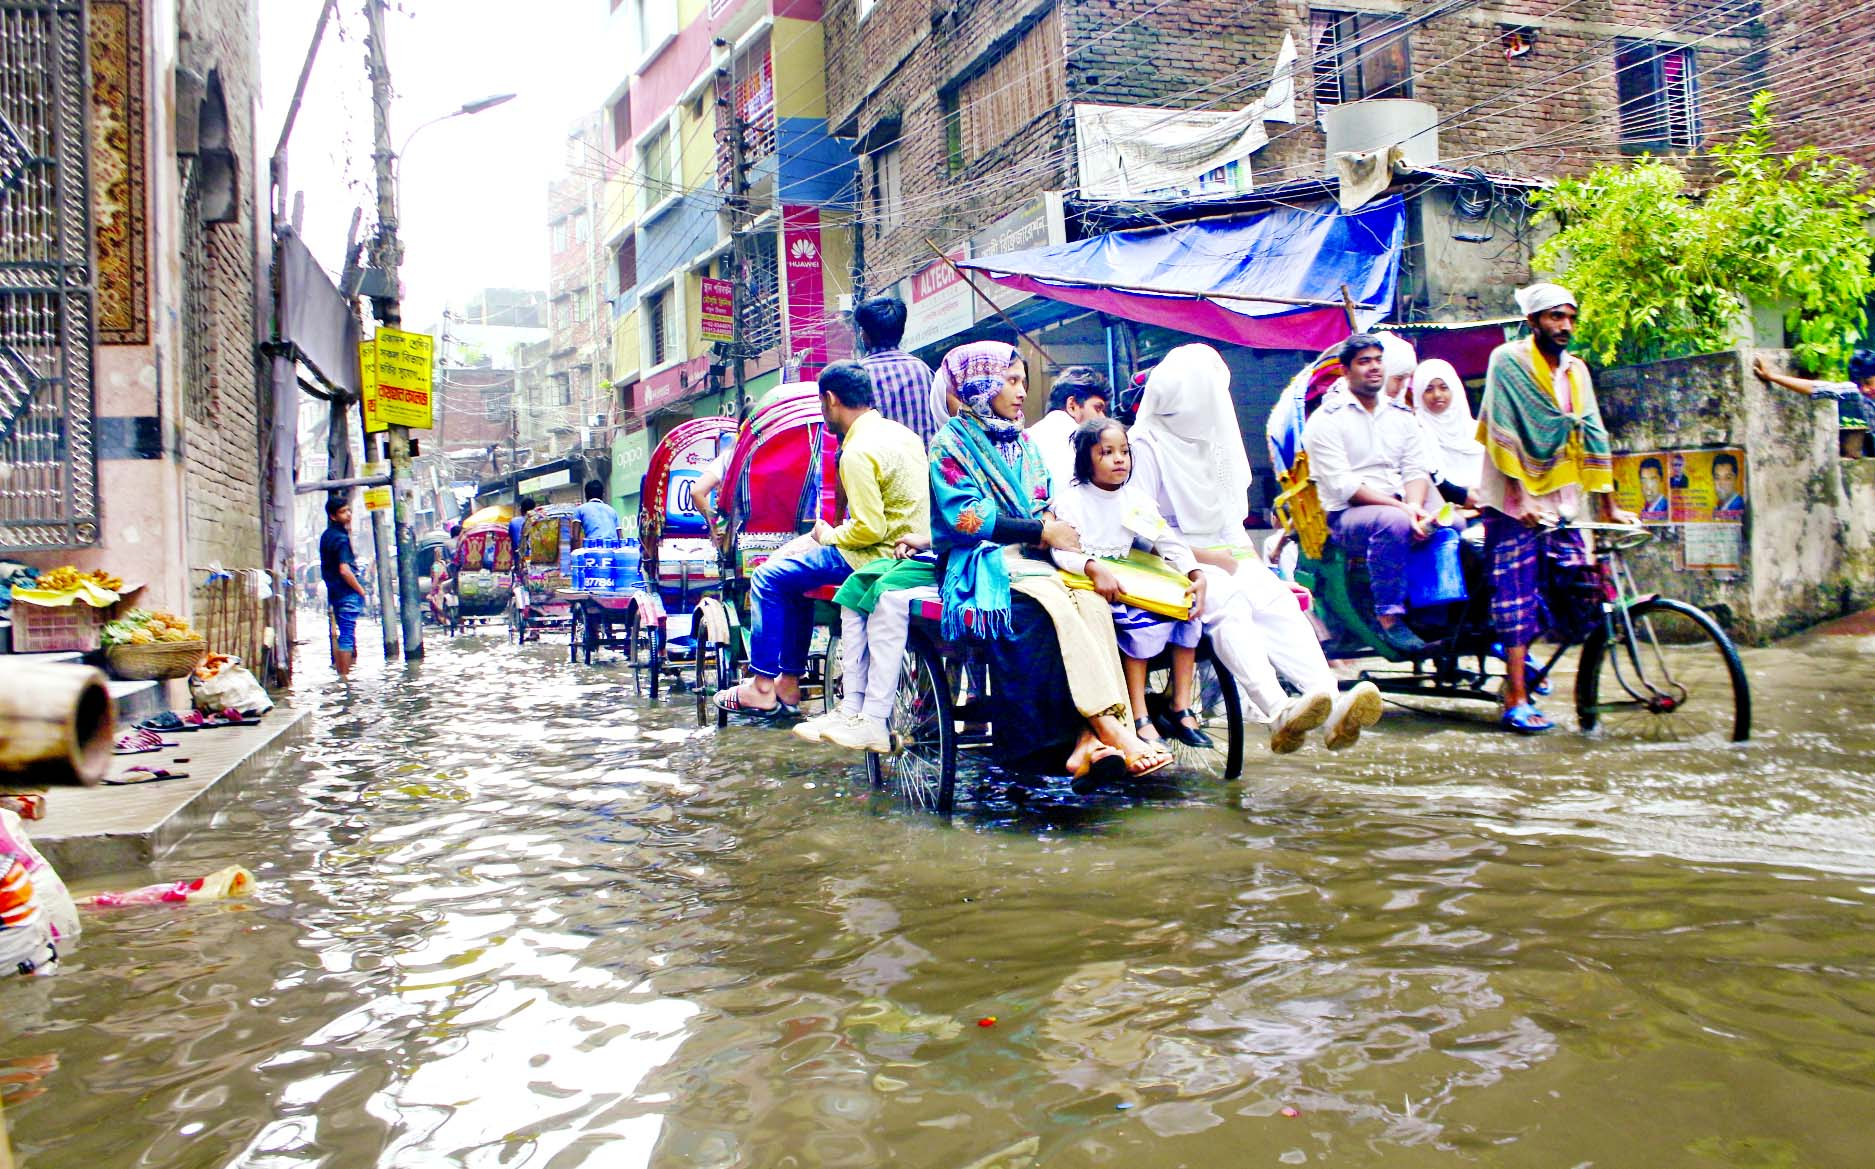 Rain water remains stagnant due to poor drainage system in different areas of the city, causing immense sufferings to commuters. Photo shows people including students passing the Nazimuddin Road with rickshaw-van pullers on Monday.